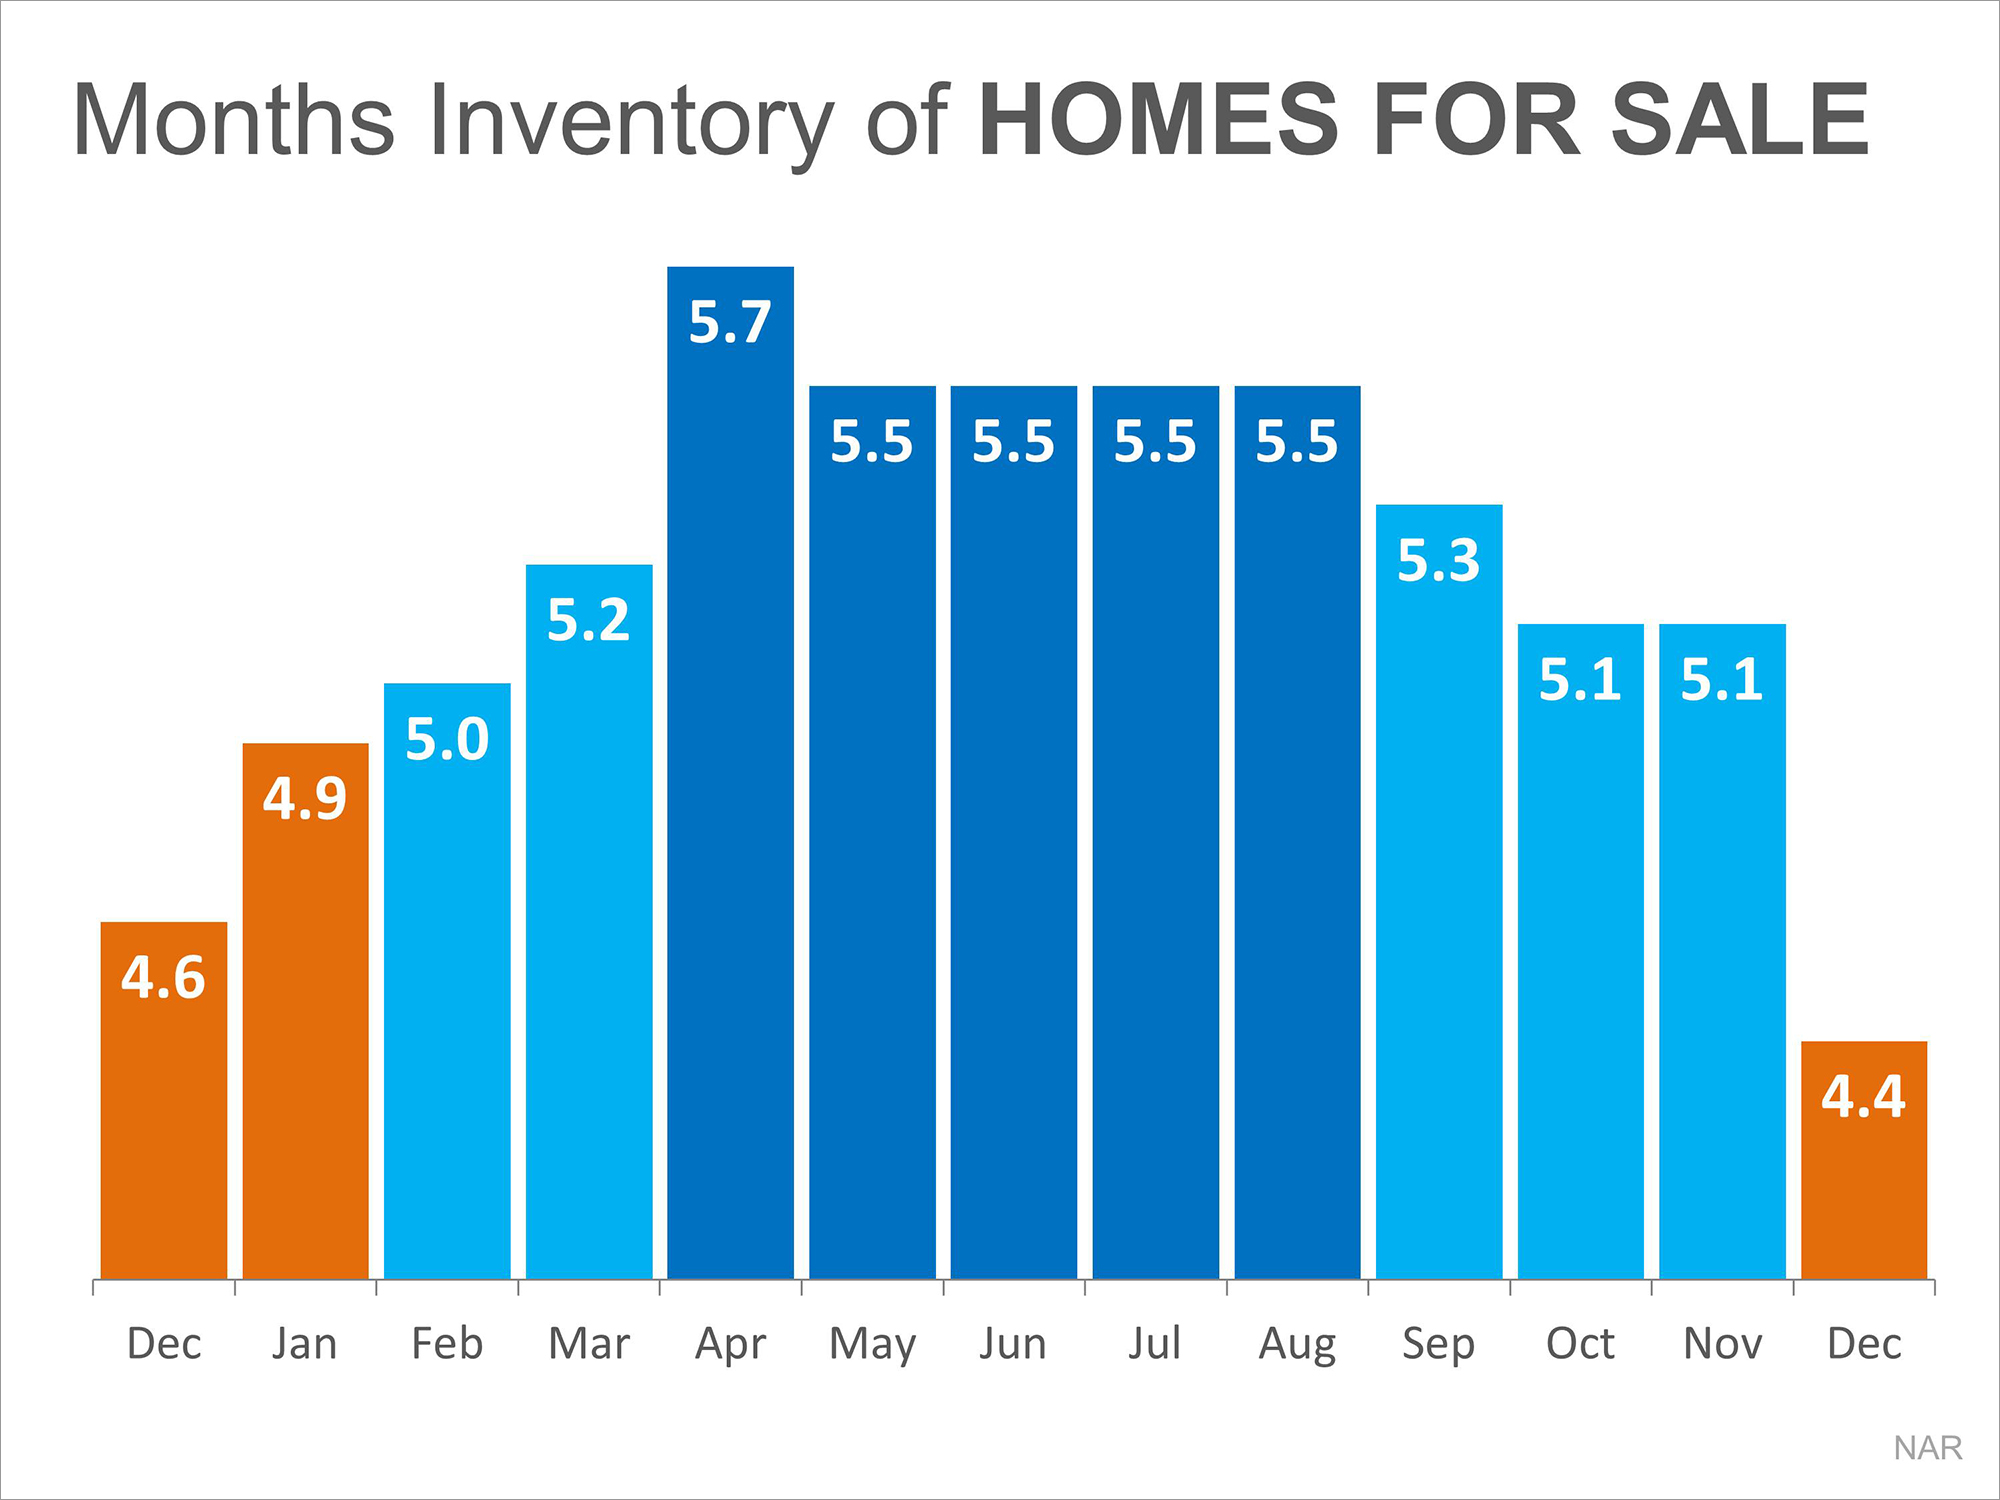 Months Inventory of Homes for Sale | Keeping Current Matters